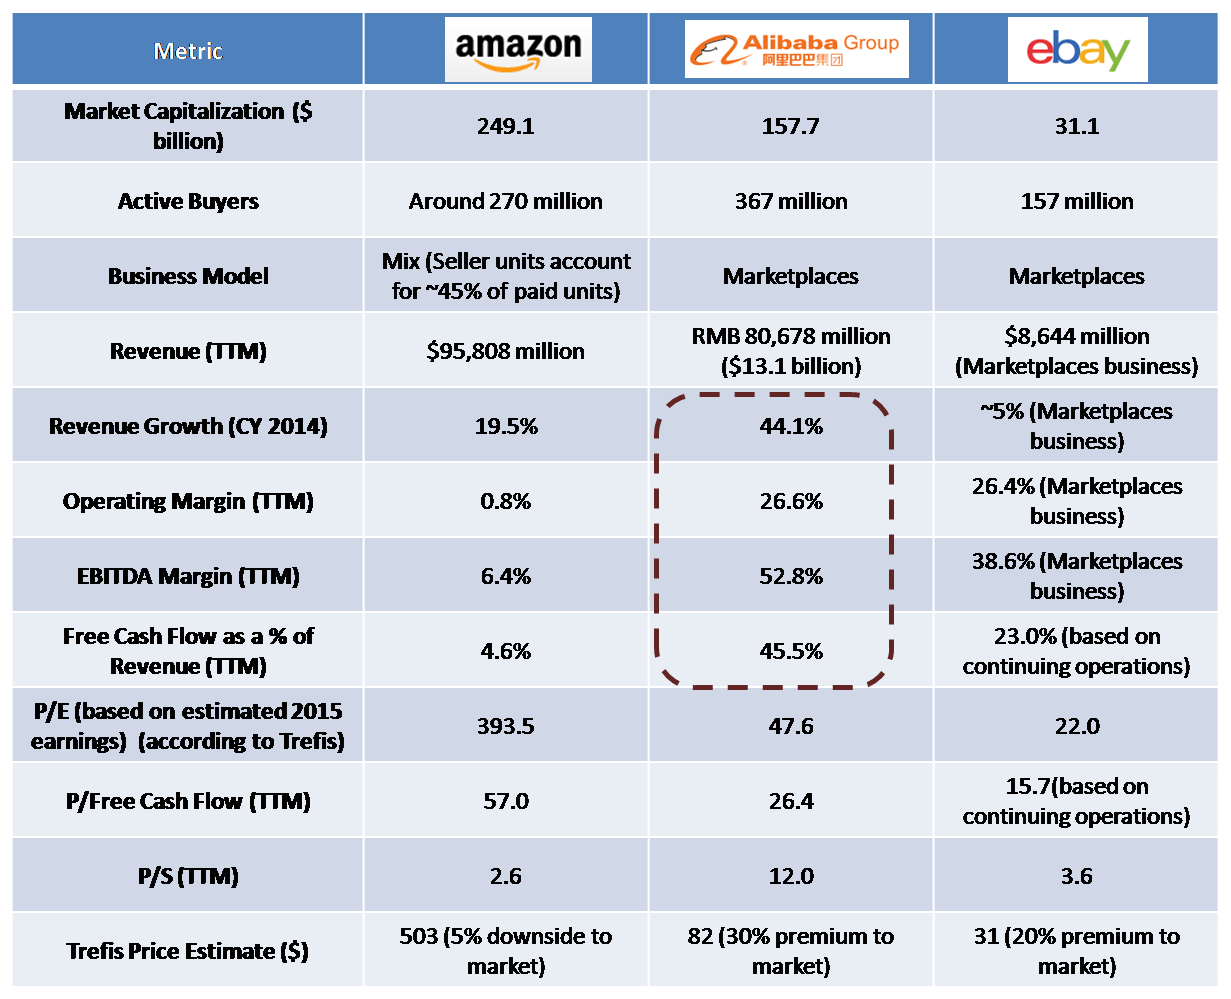 ebay financial analysis Ebay - balance sheet, income statement, cash flow, earnings & estimates, ratio and margins financial statements for ebay inc.